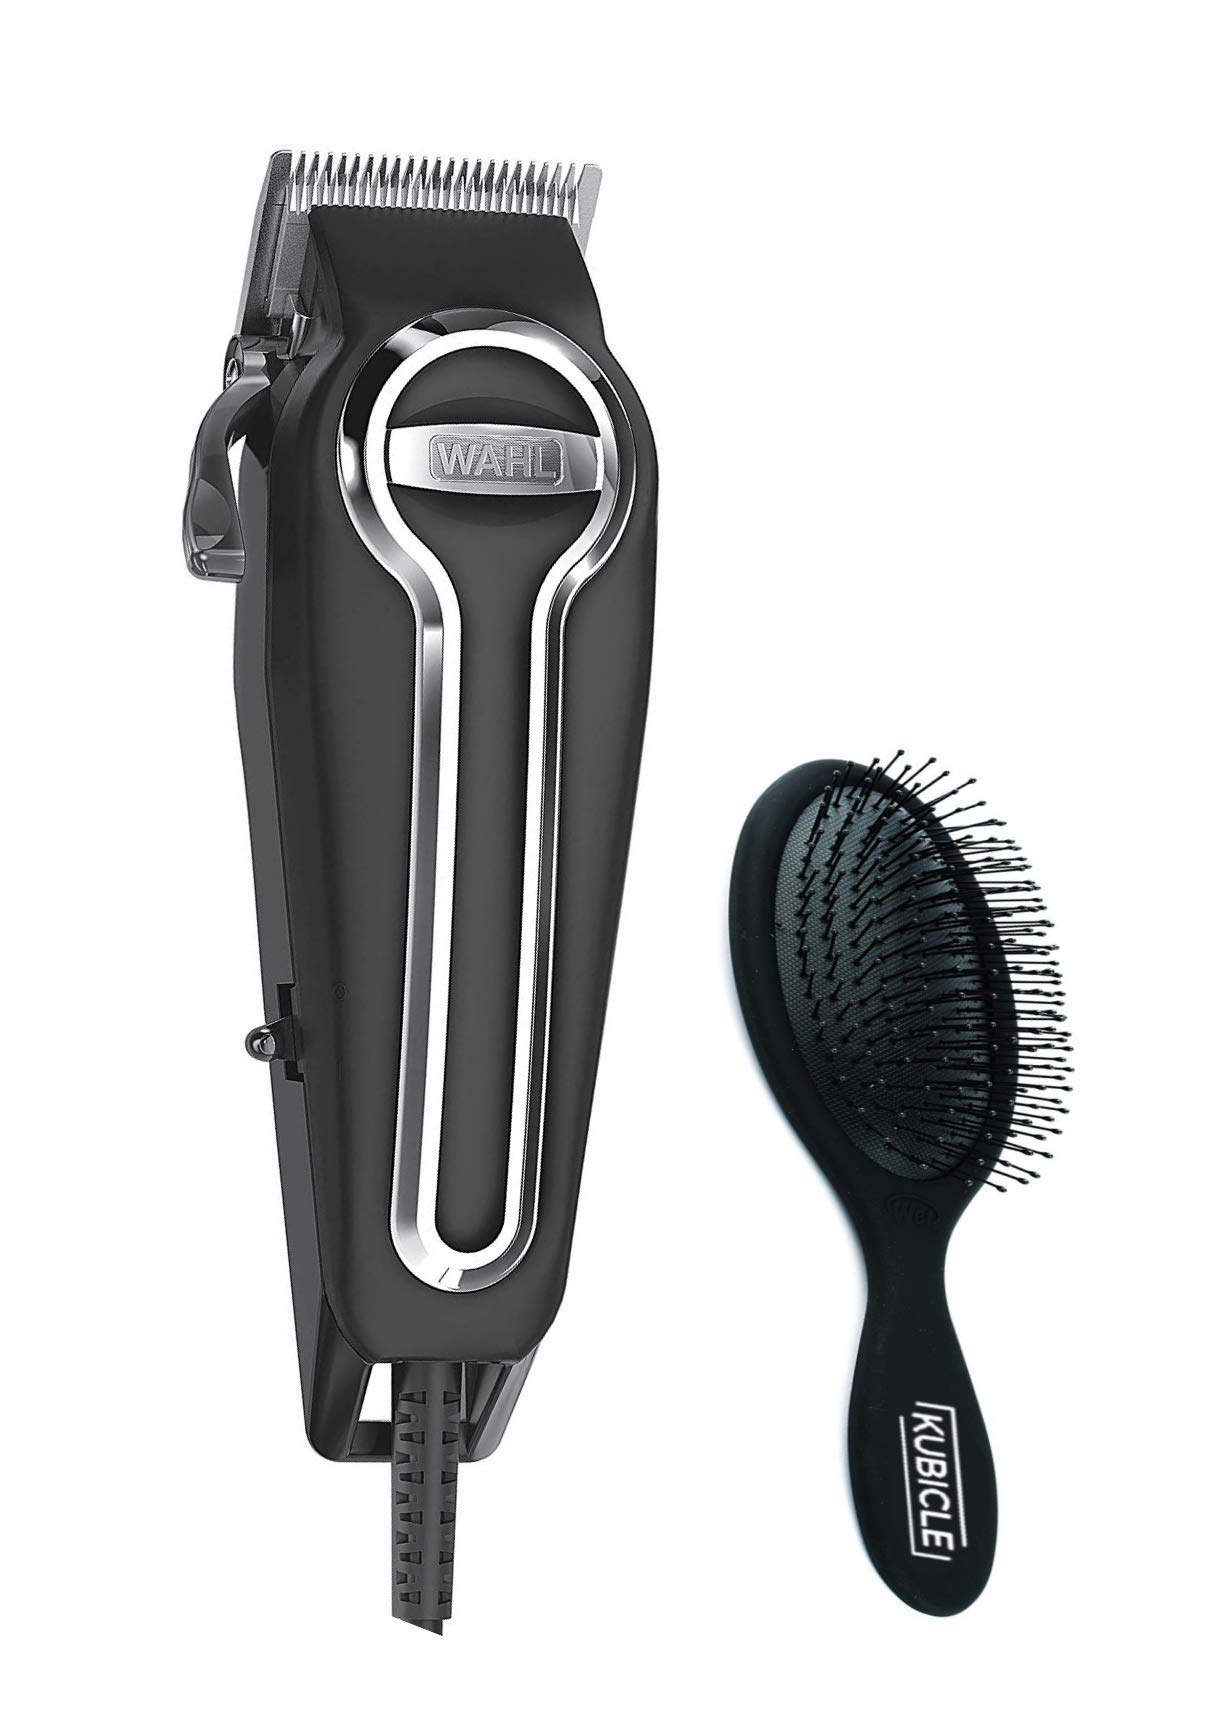 Wahl Hair Clippers with Premium Smooth Cutting Stainless Steel Blades and Secure Fit Attachment Combs Included Great For Haircutting and Beard Trimming and Kubicle Hair Brush Bundle